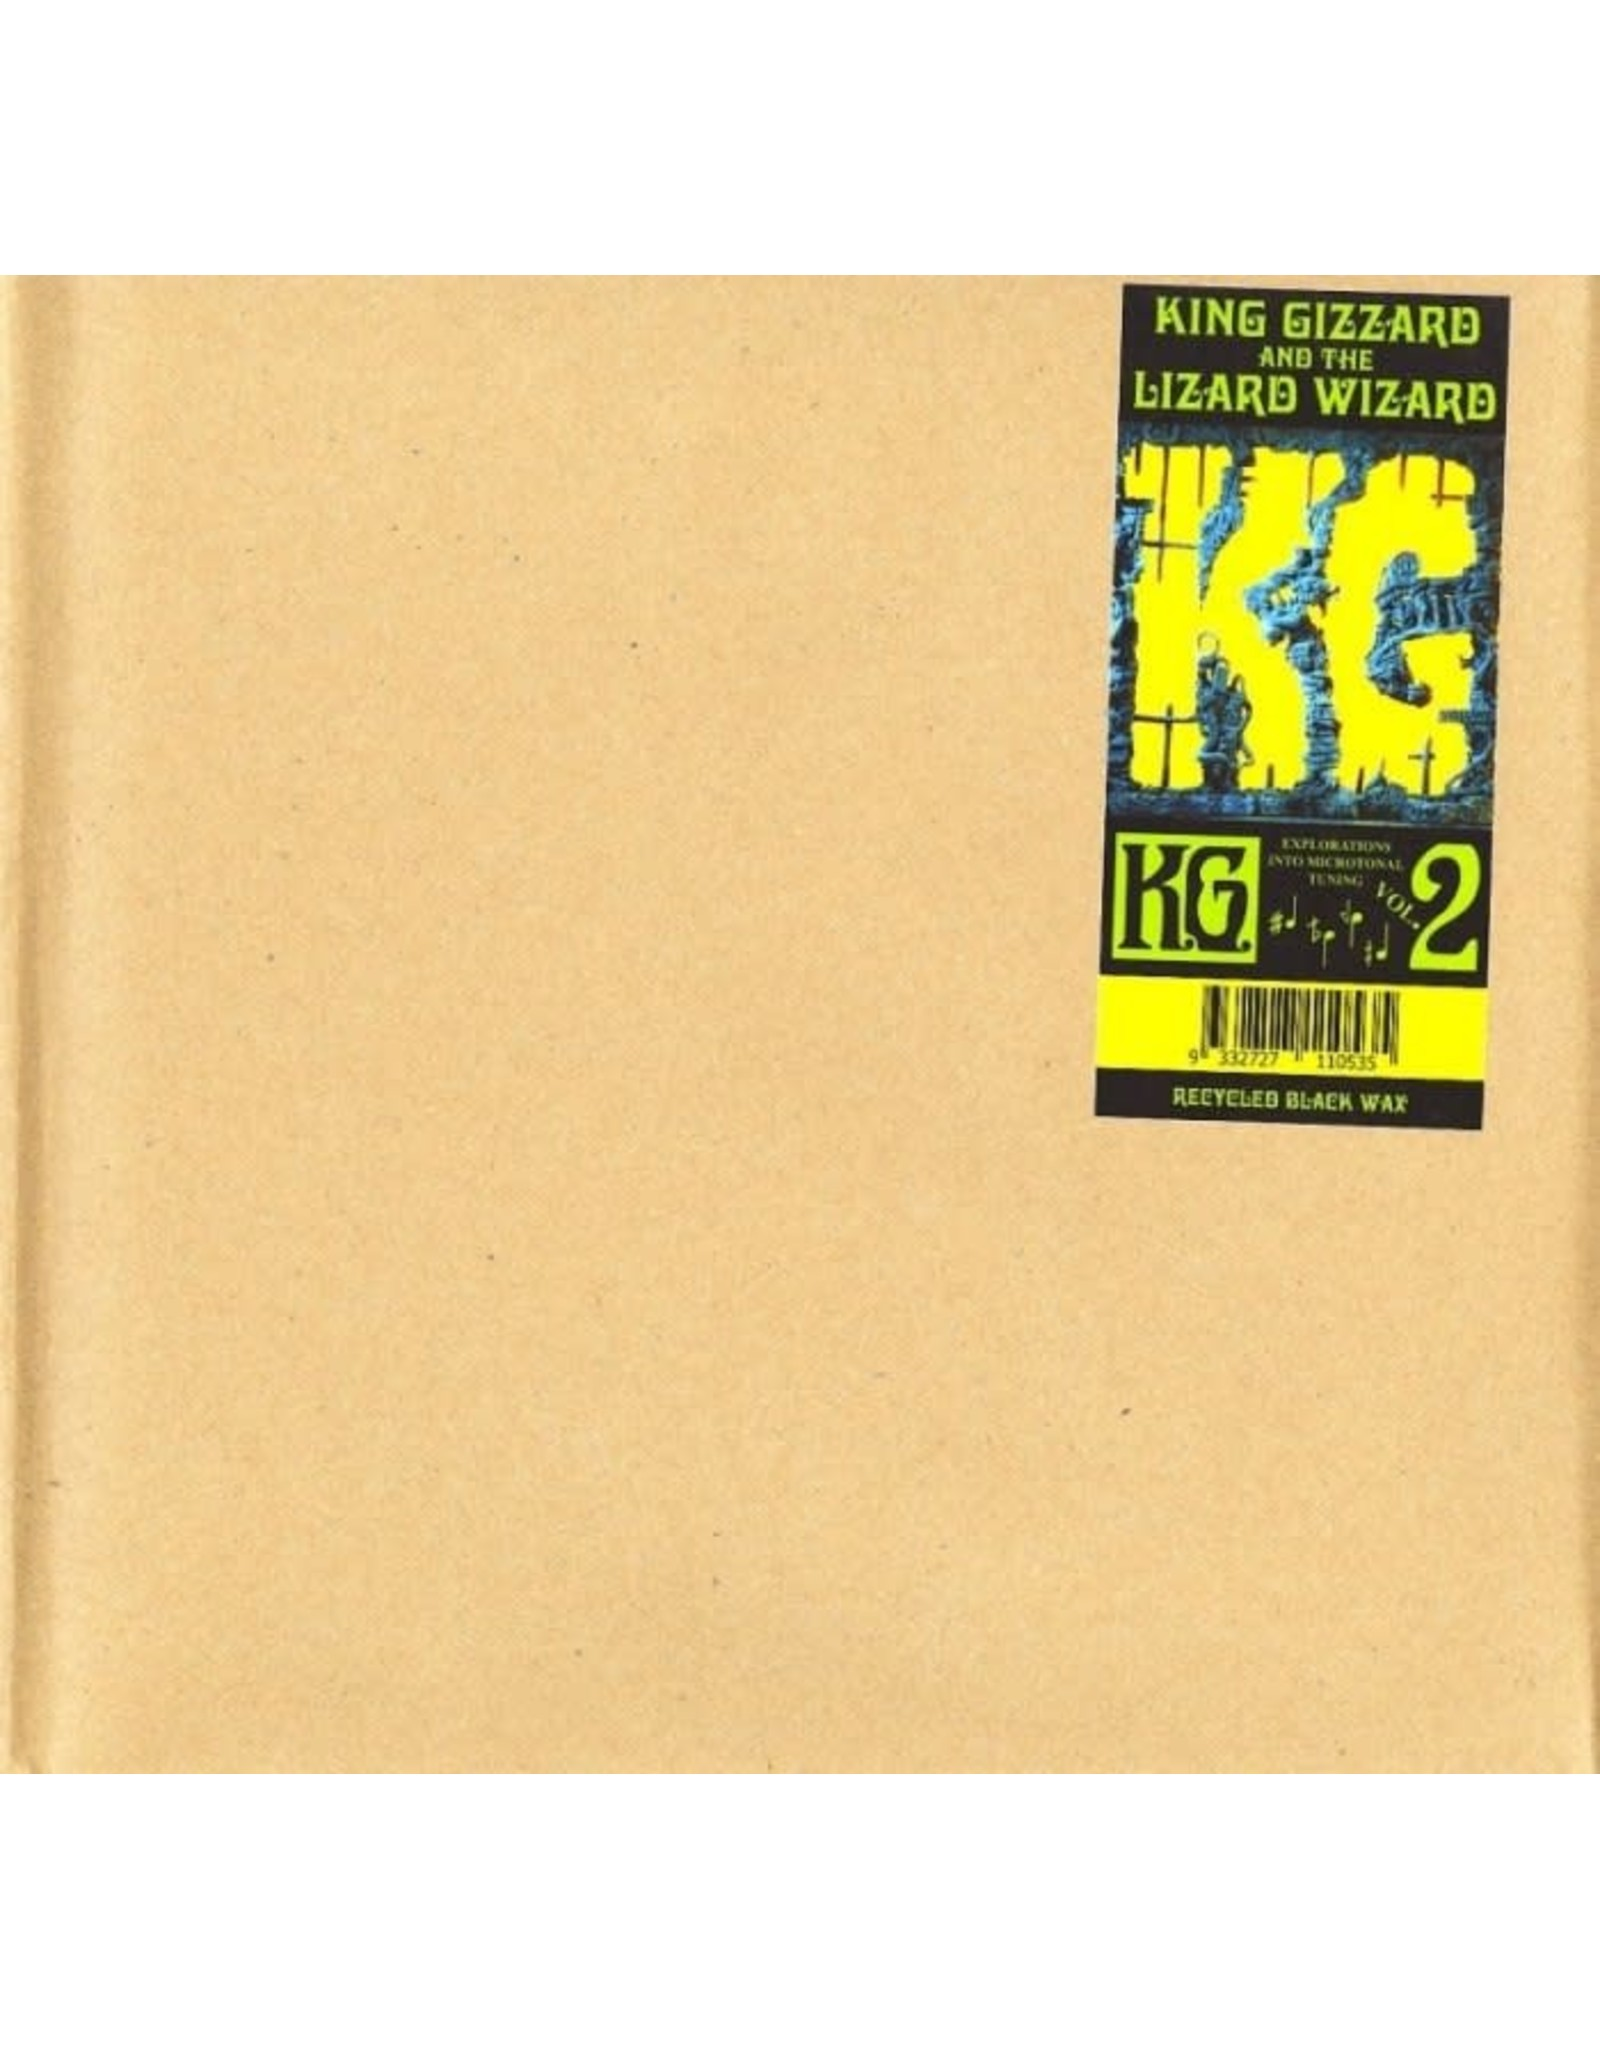 King Gizzard and the Lizard Wizard - K.G. V2  LP